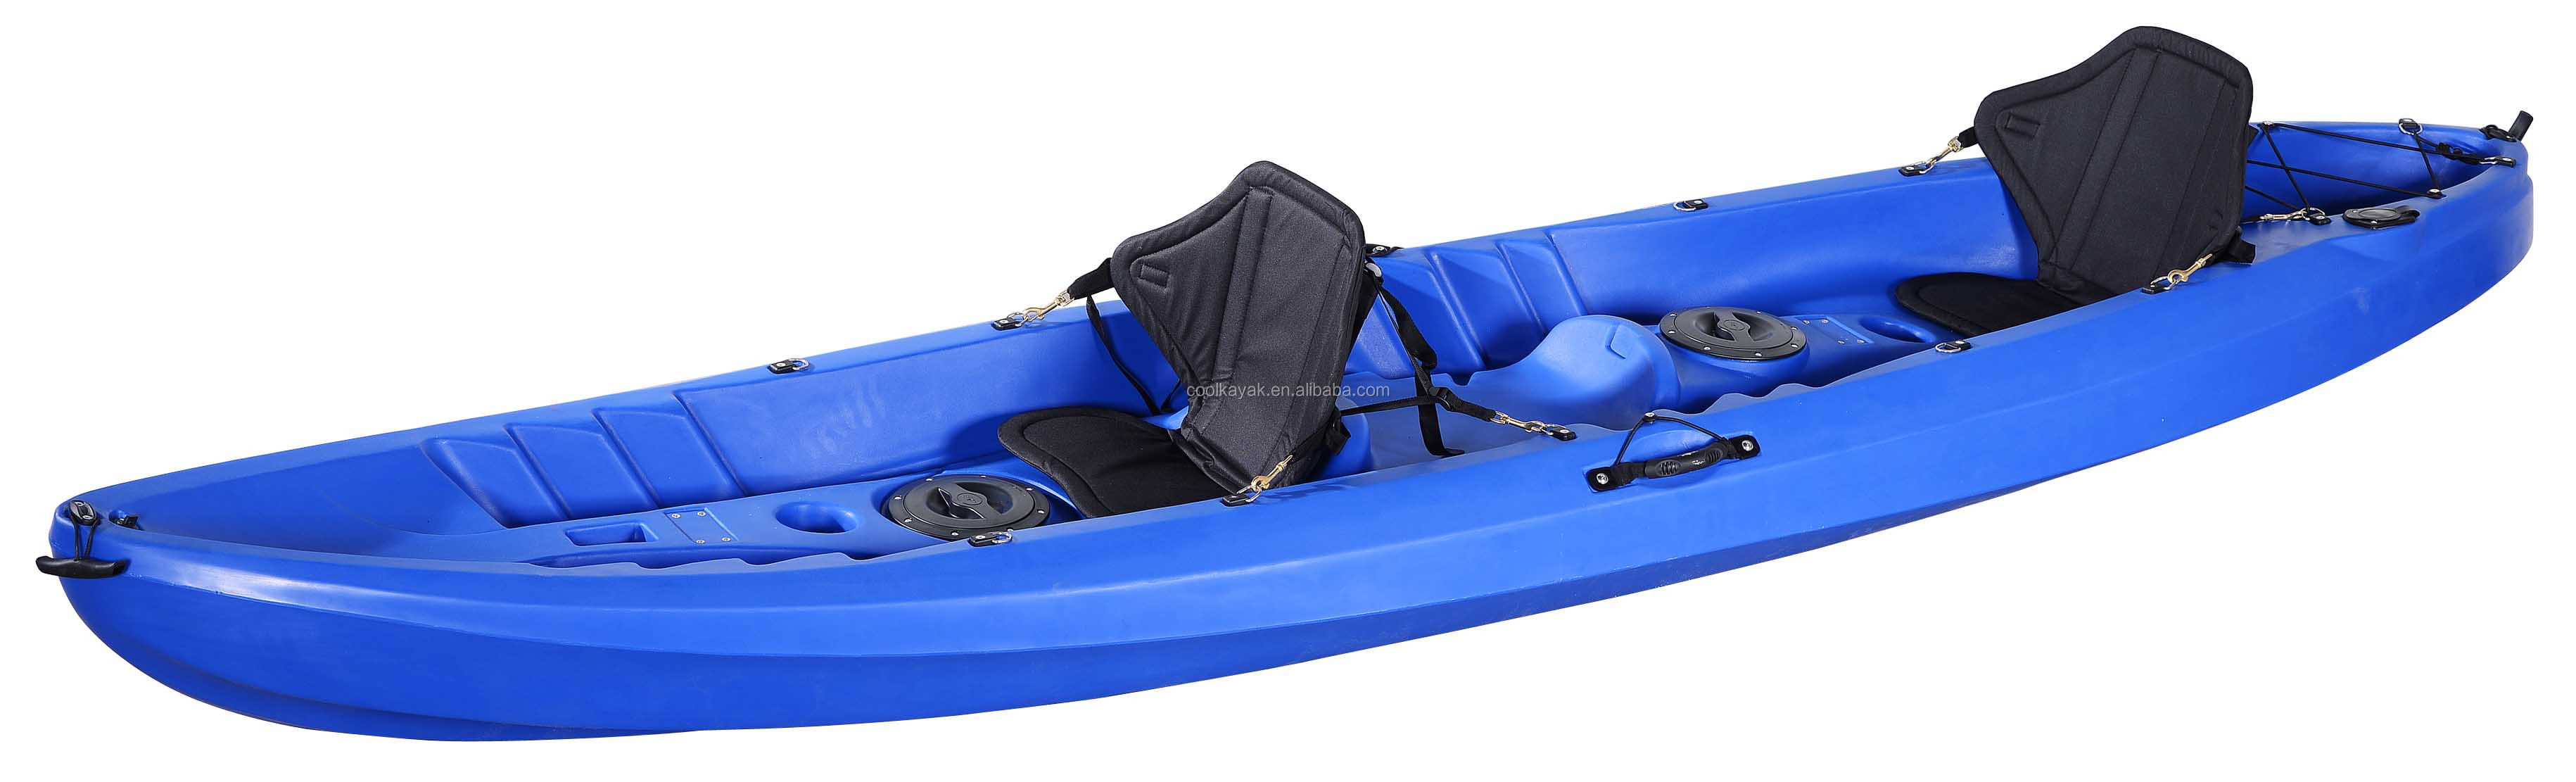 2 1 Person Sit On Top Fishing Kayak View 2 Person Kayak